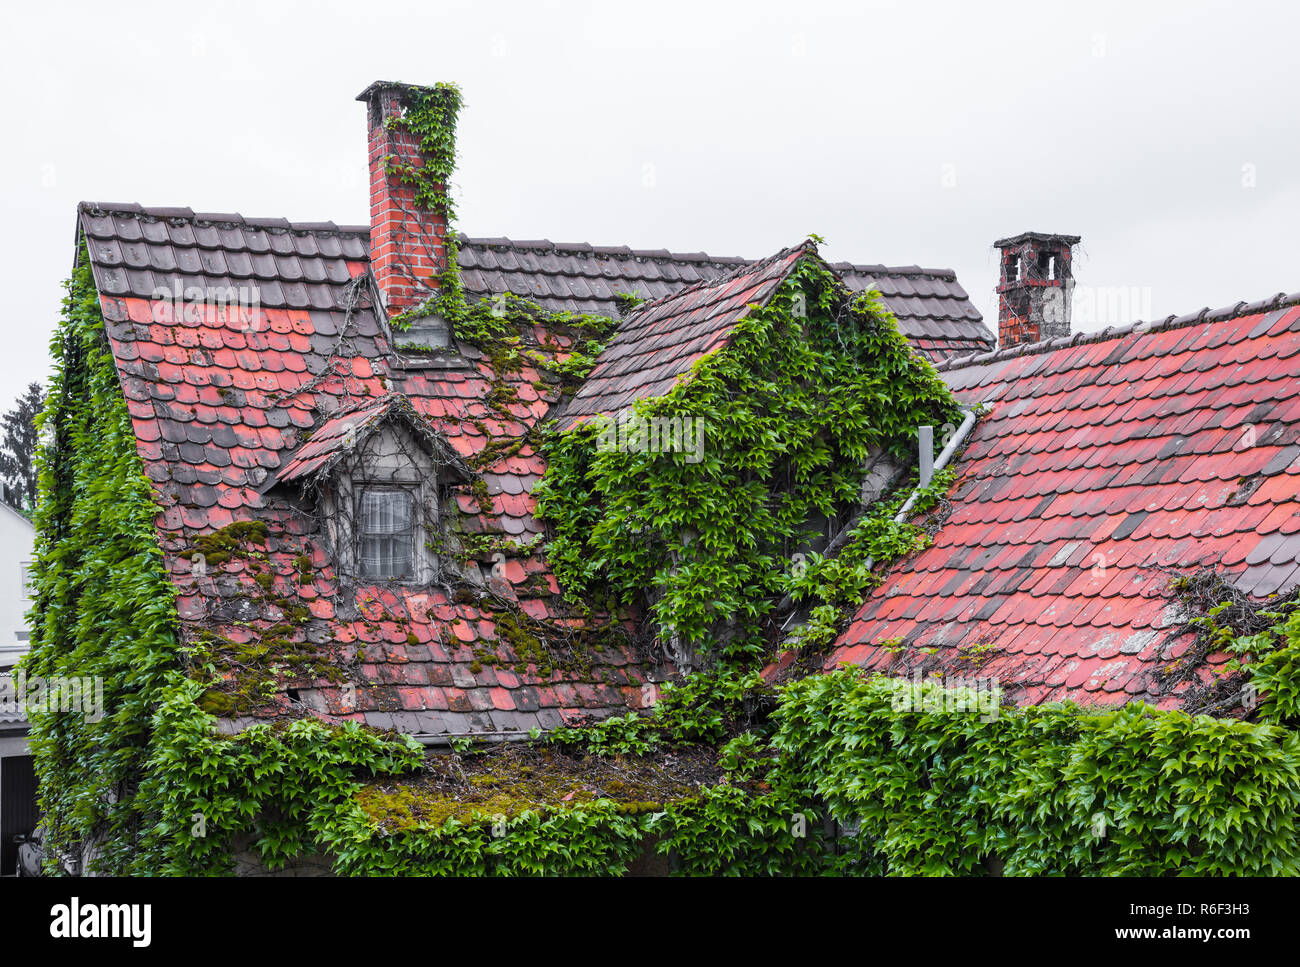 overgrown roof of an old house Stock Photo